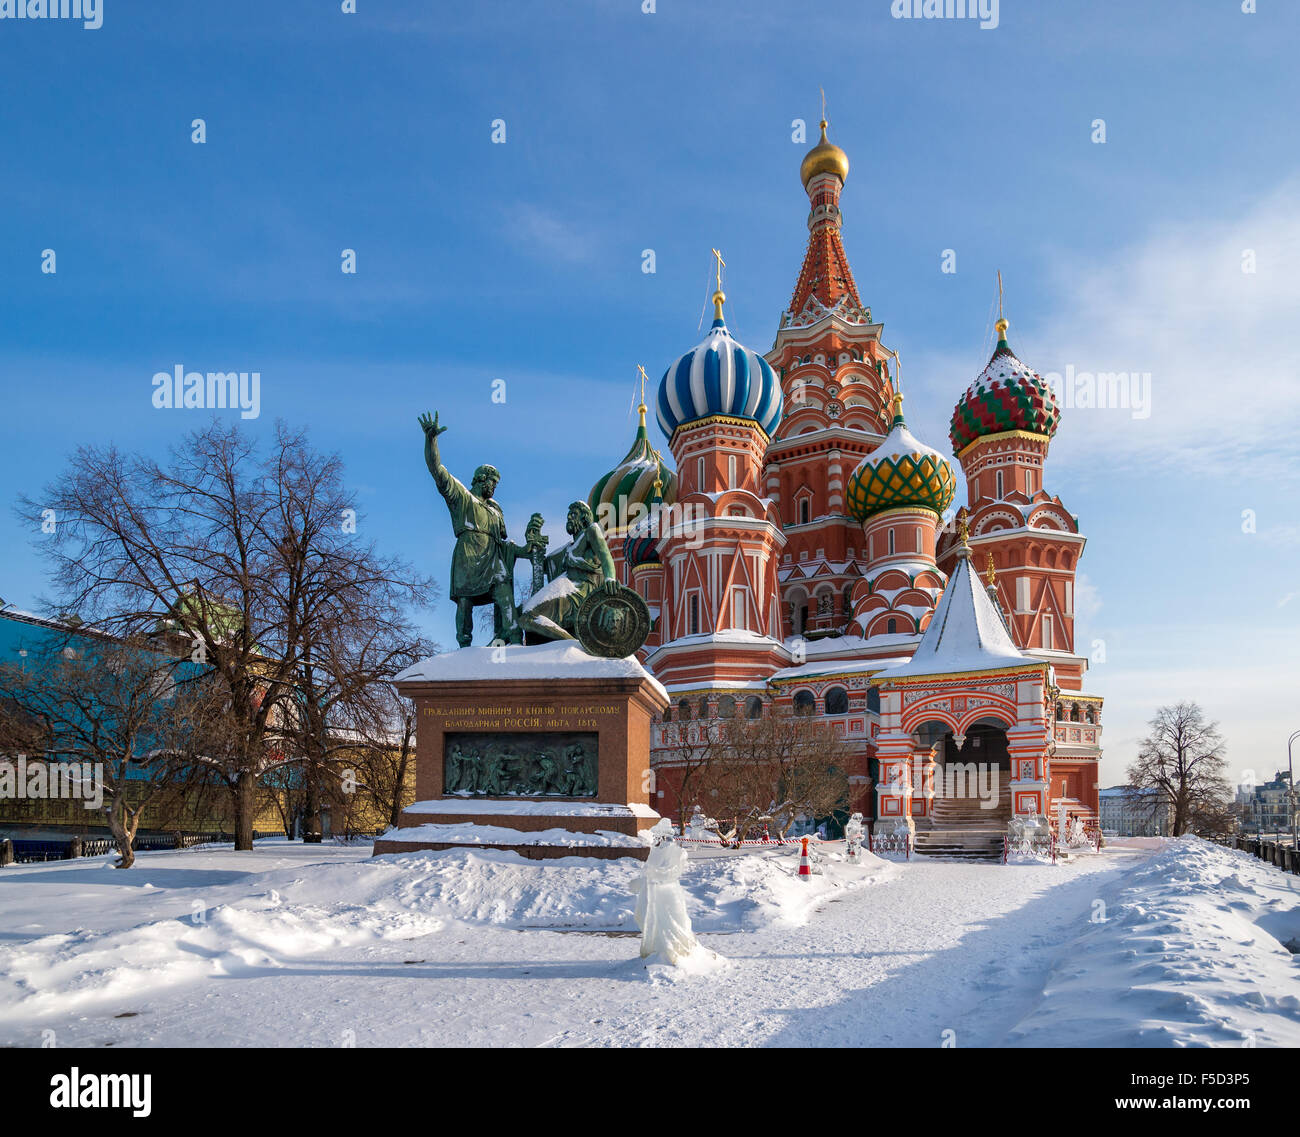 St. Basilu0027s Cathedral In Moscow, Russia On A Winter Day